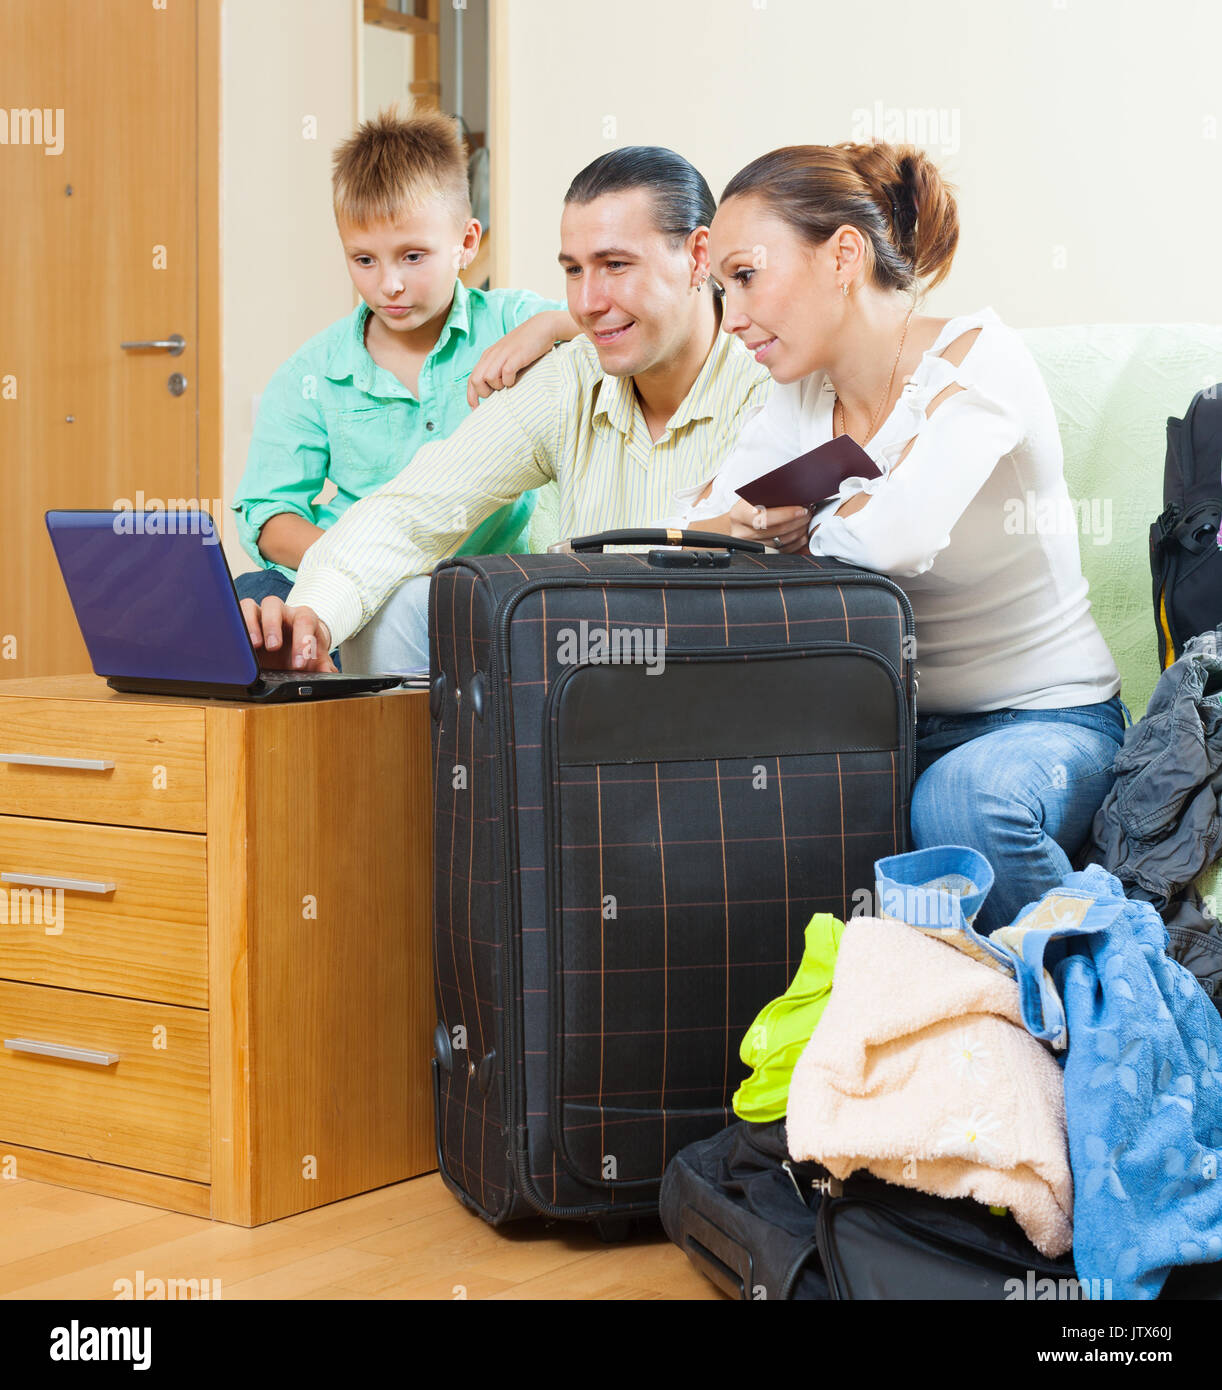 Ordinary family of three with luggage choosing the tickets in internet and going on holiday - Stock Image